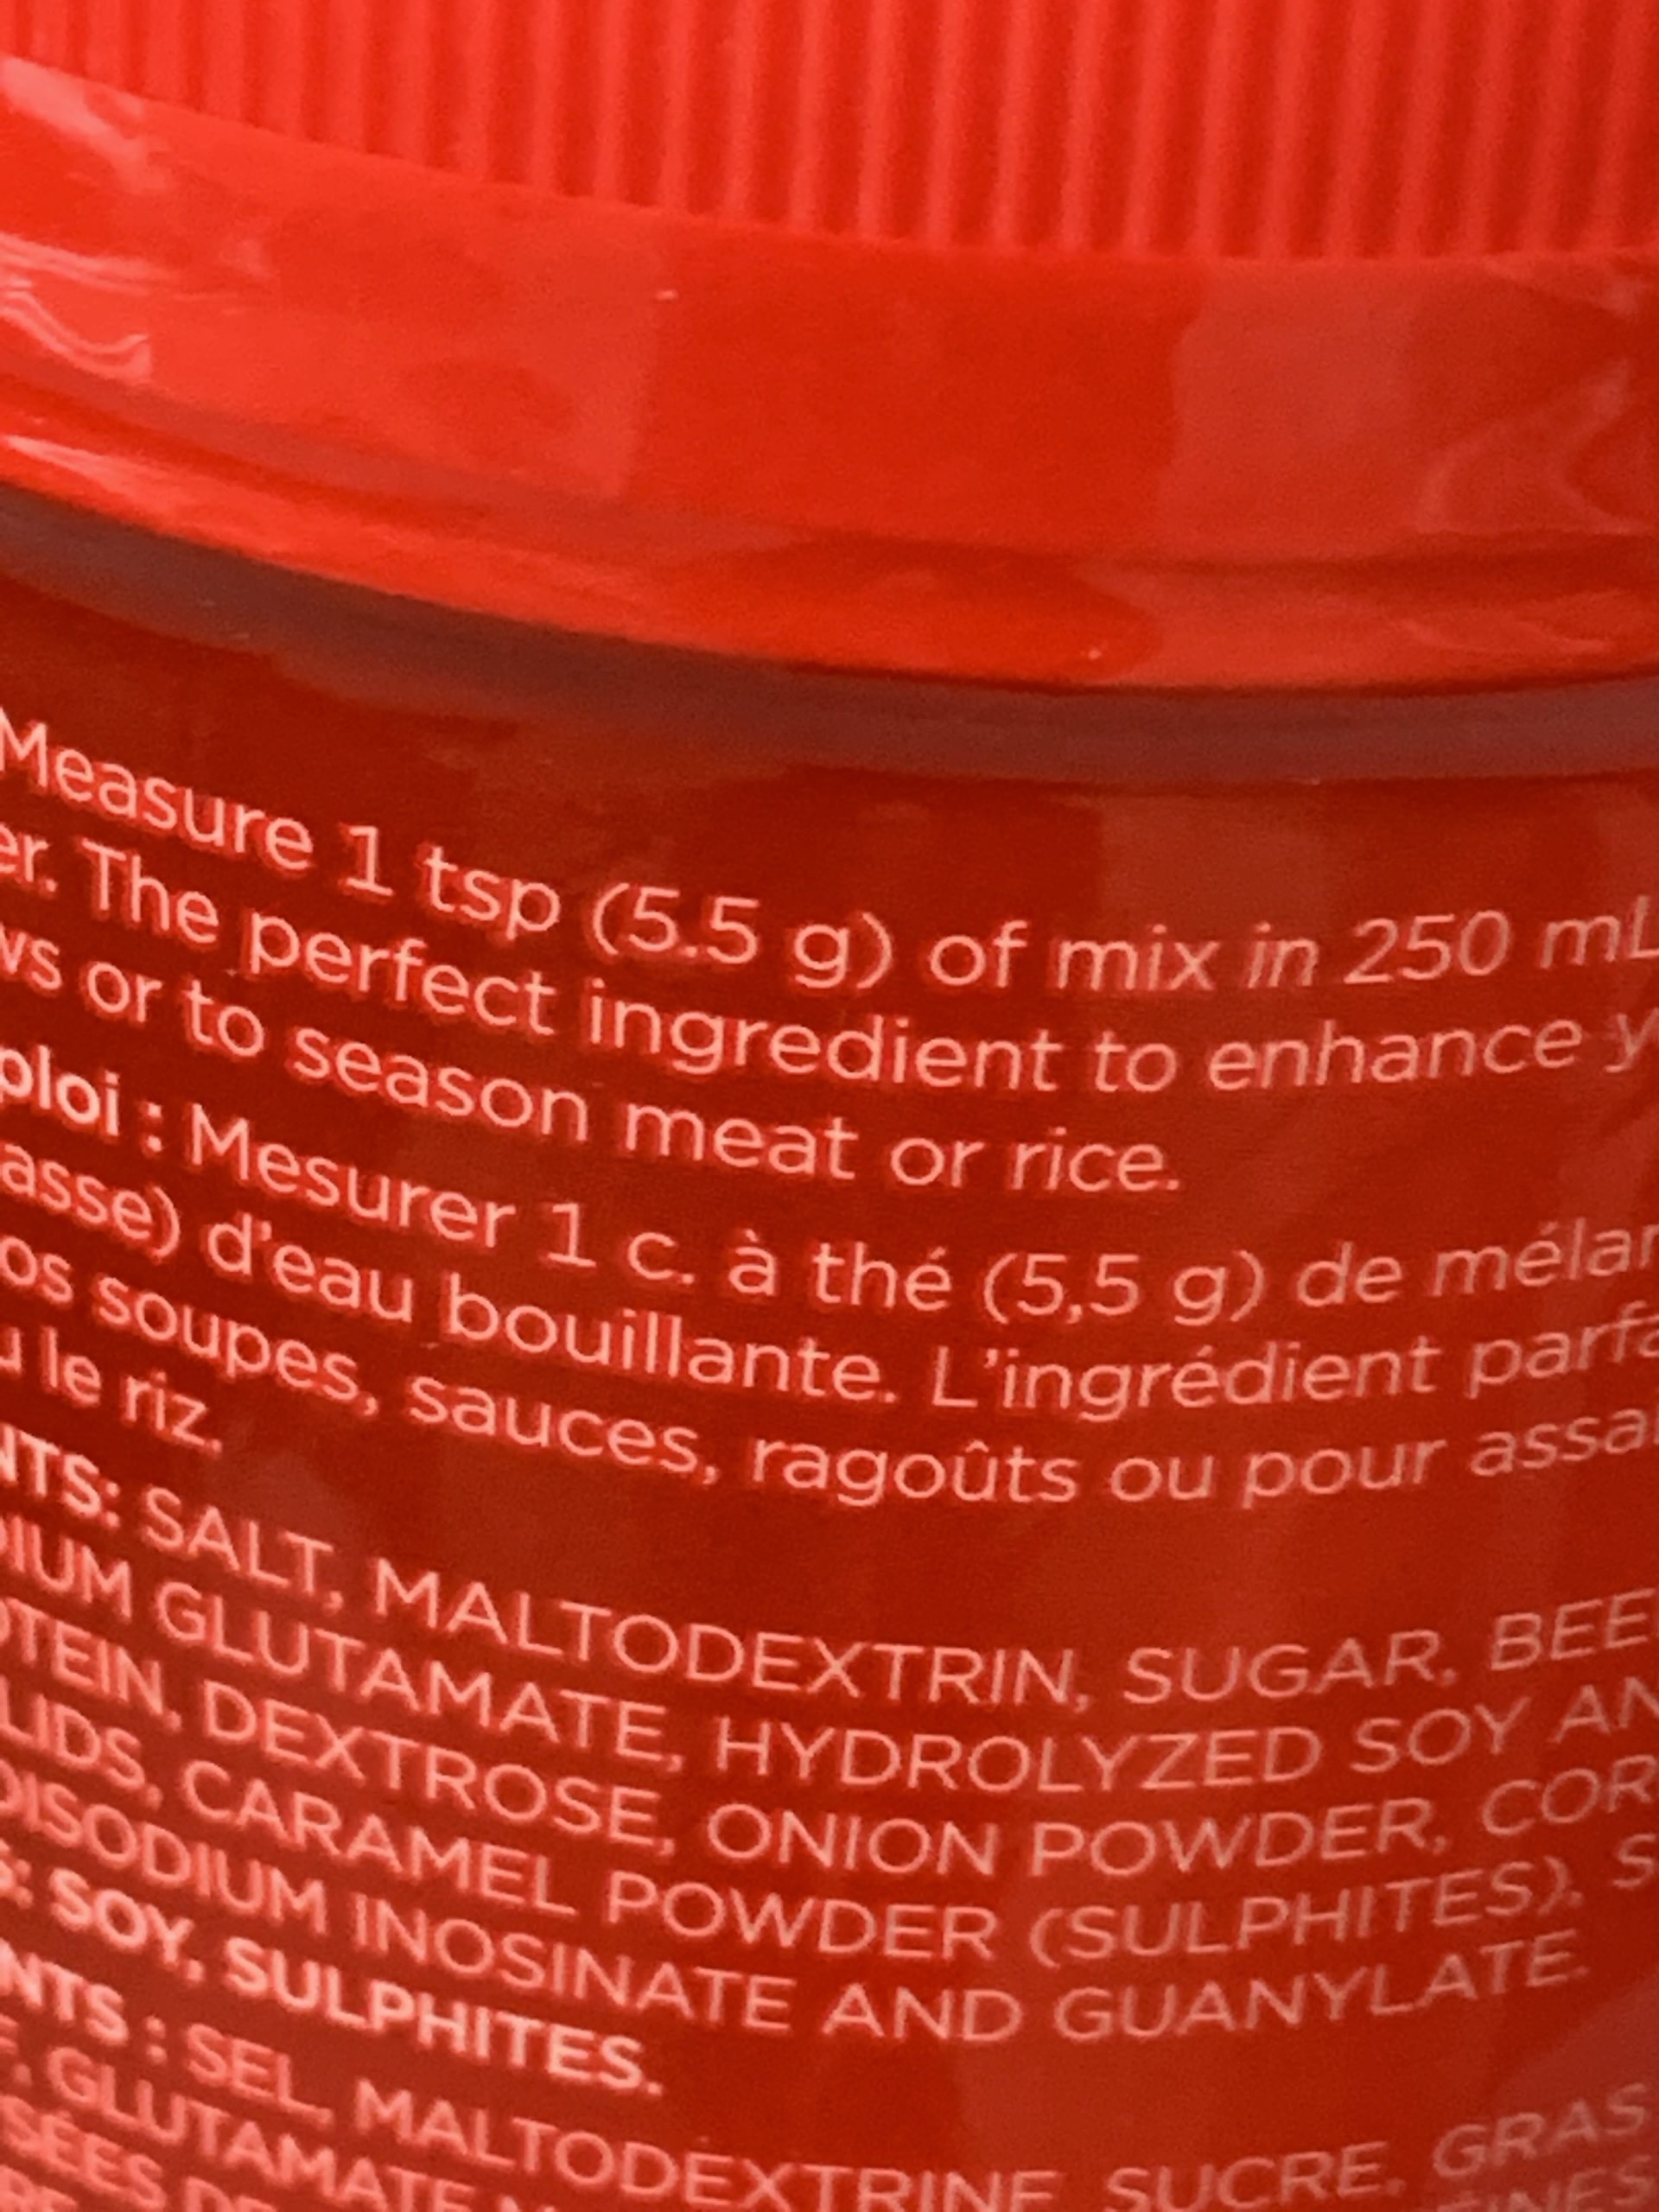 Instruction on how to use the product; our case it's 88g beef base for 4L water.